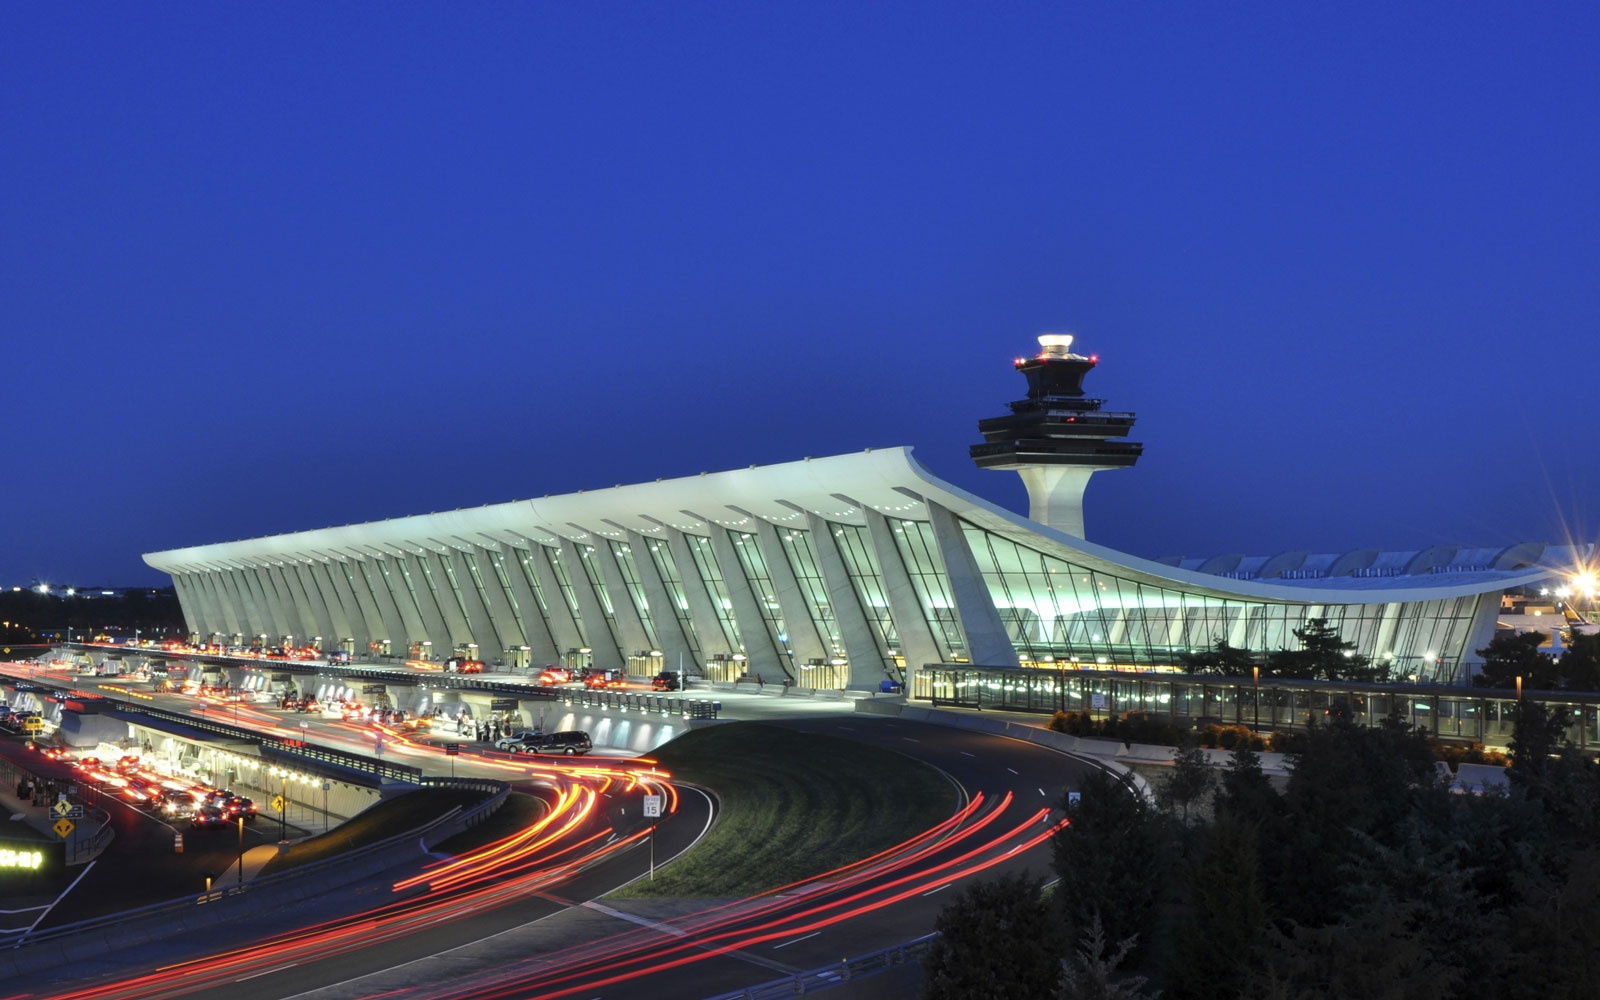 No. 7 Washington Dulles (IAD)